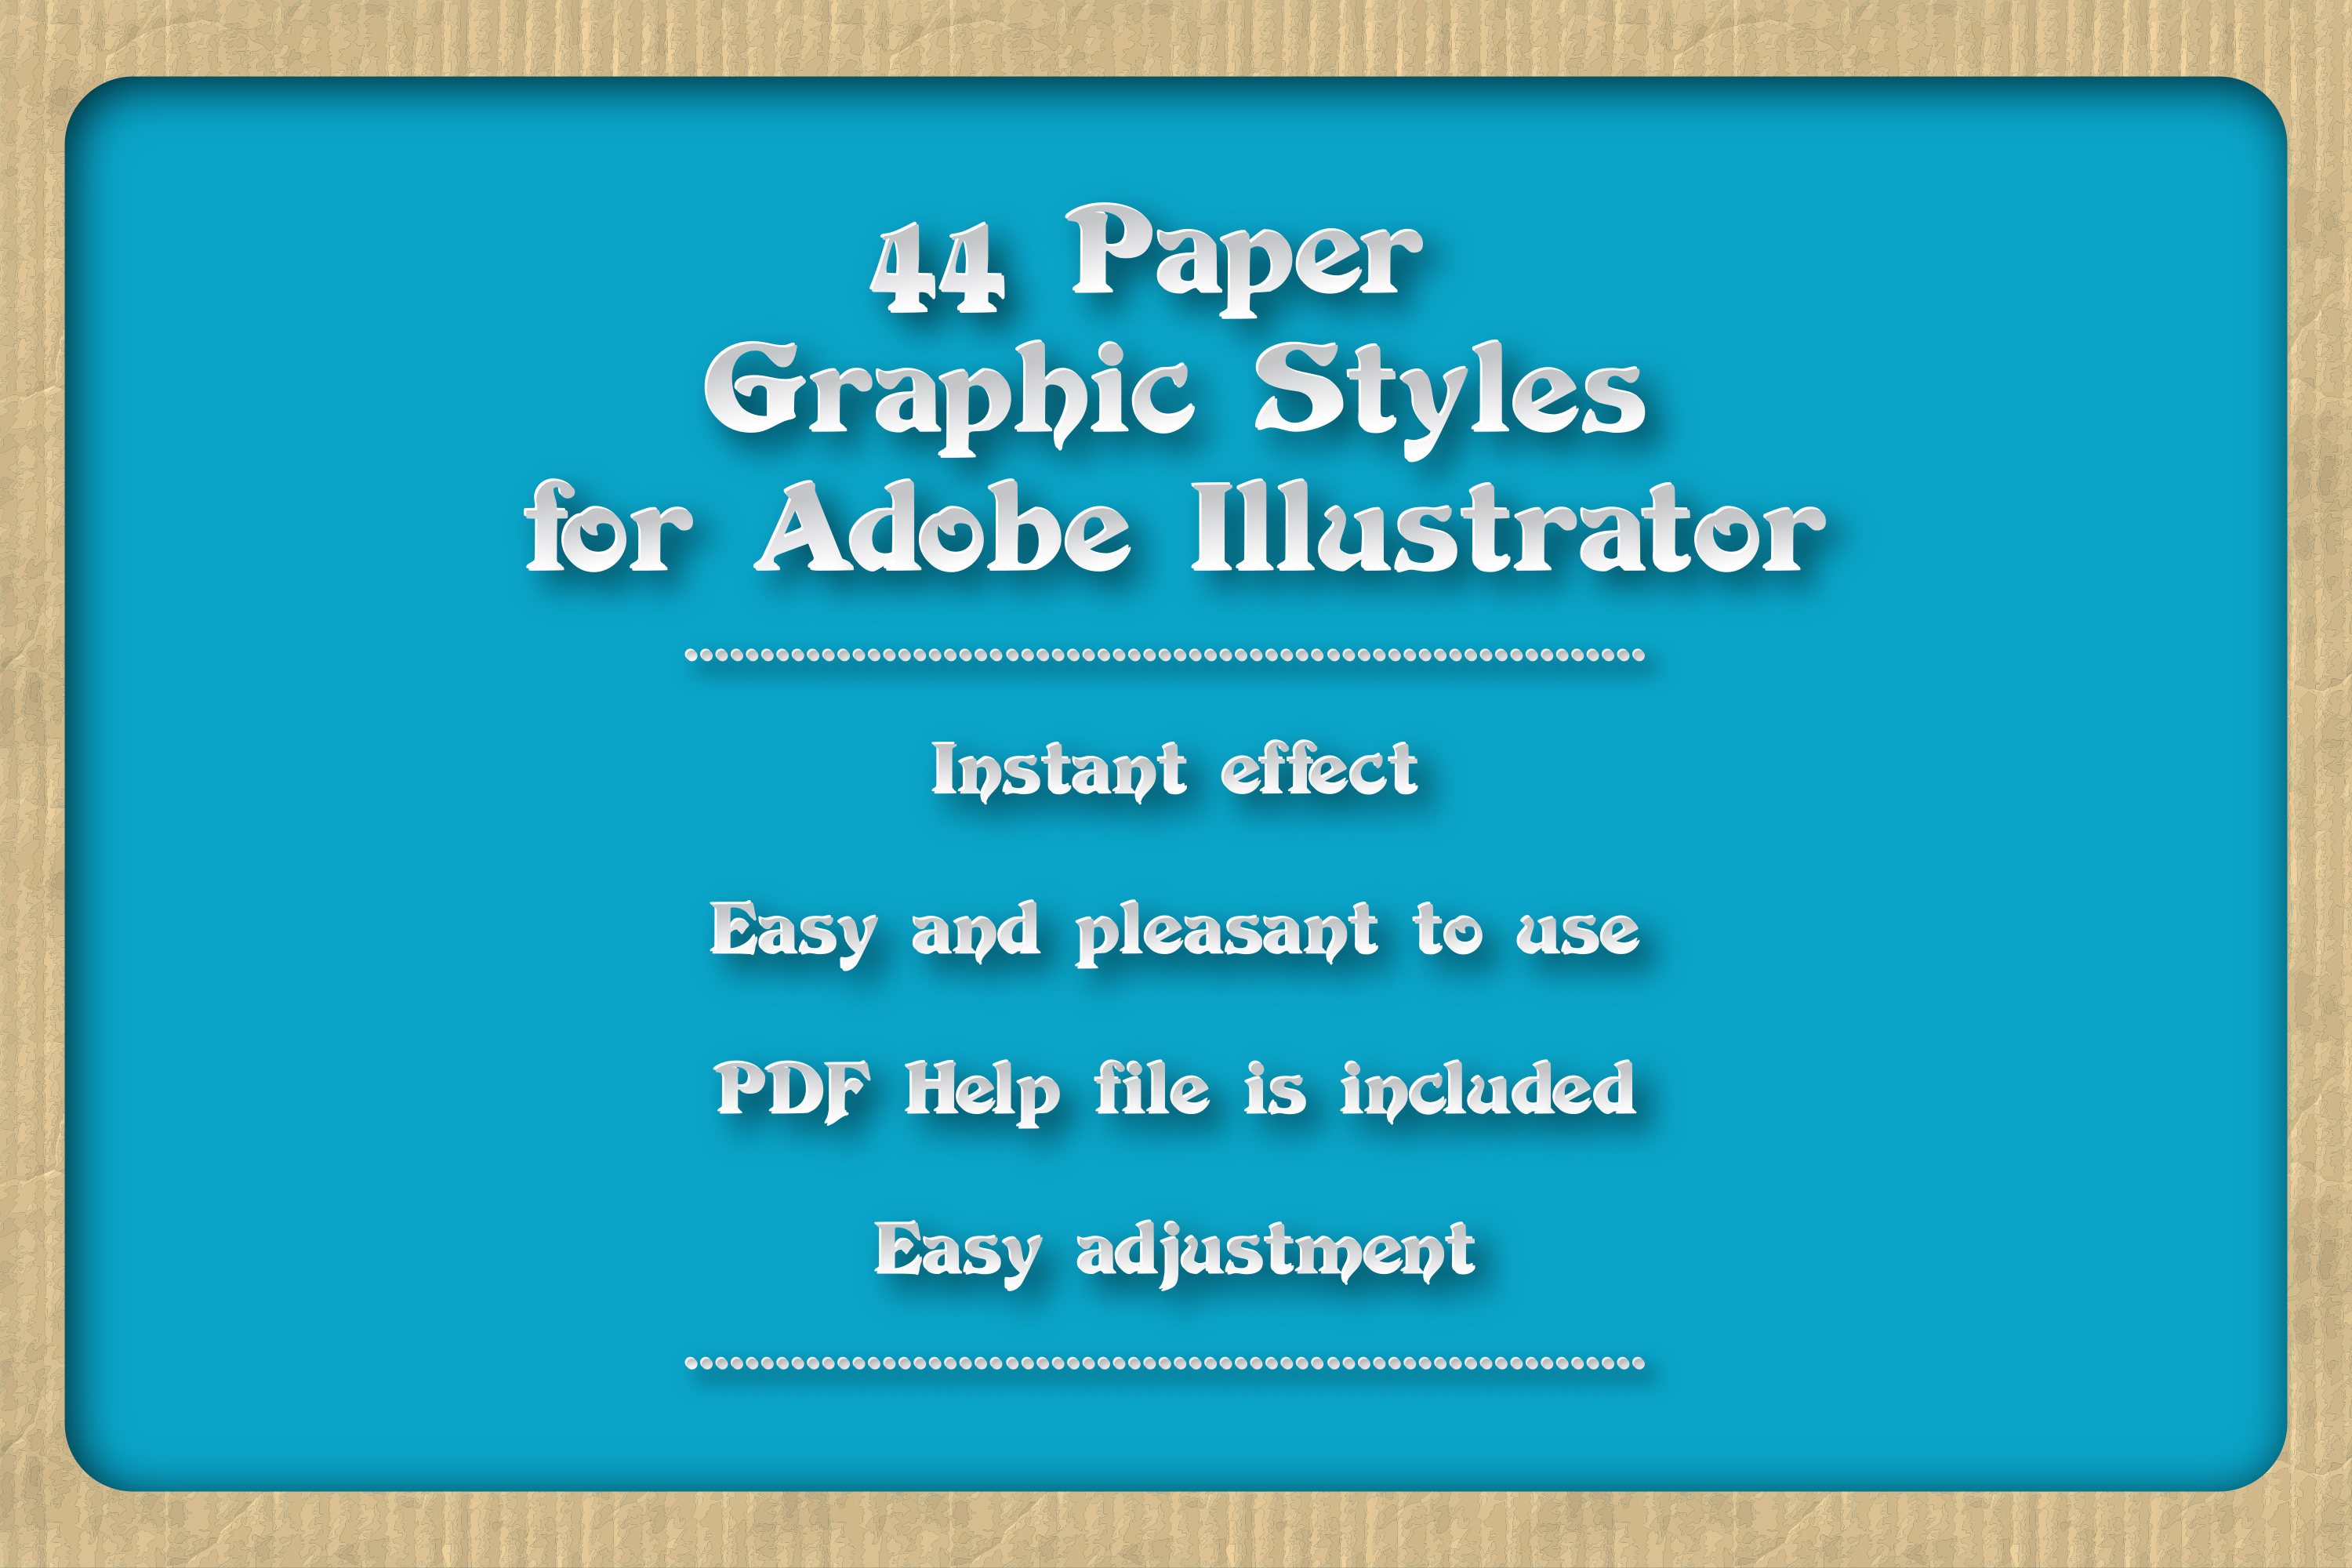 44 Paper Adobe Illustrator Graphic Styles example image 1